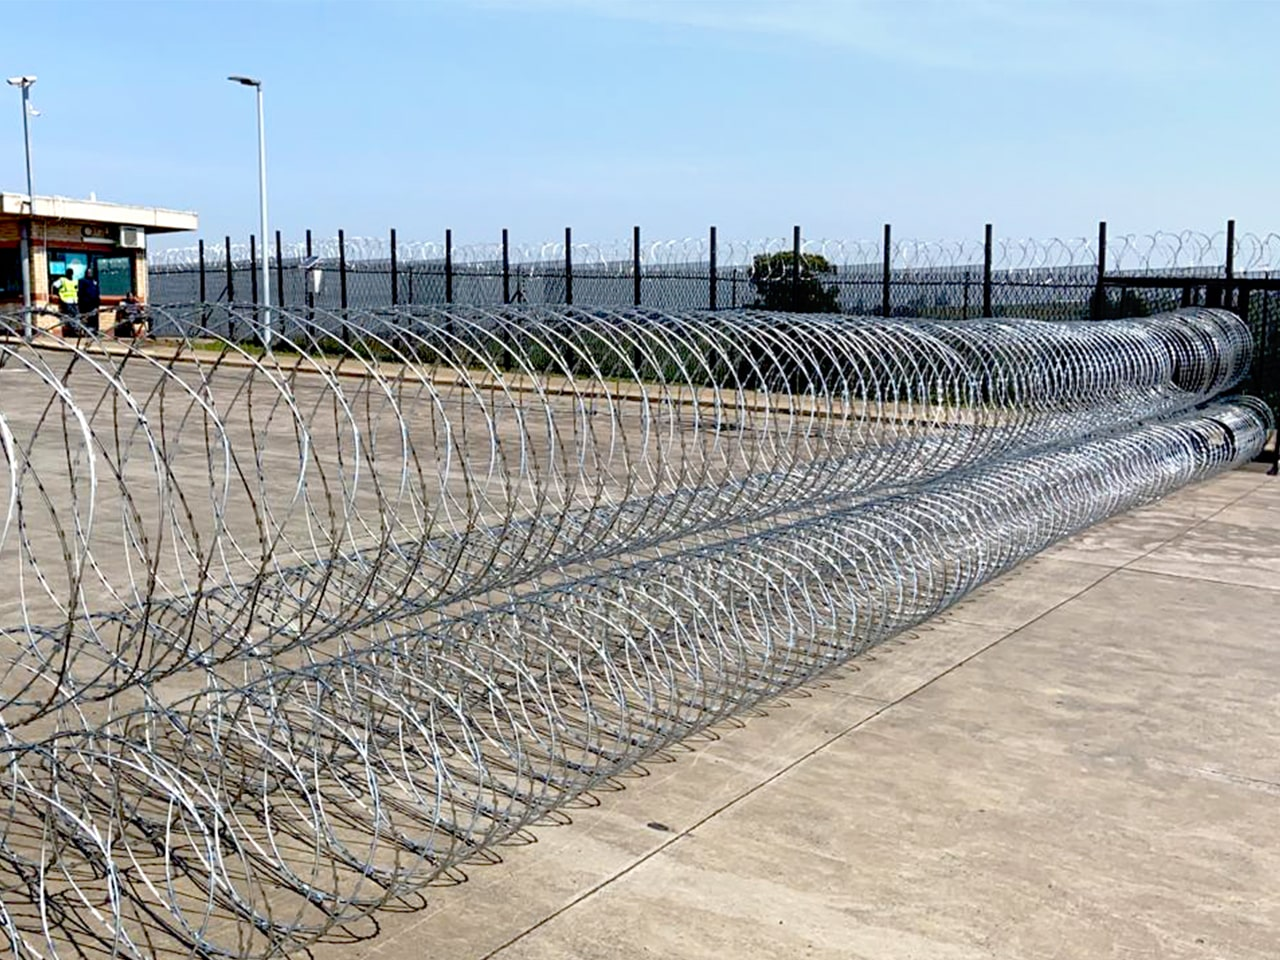 Gate protection rapid deployment concertina razor wire barriers deployed